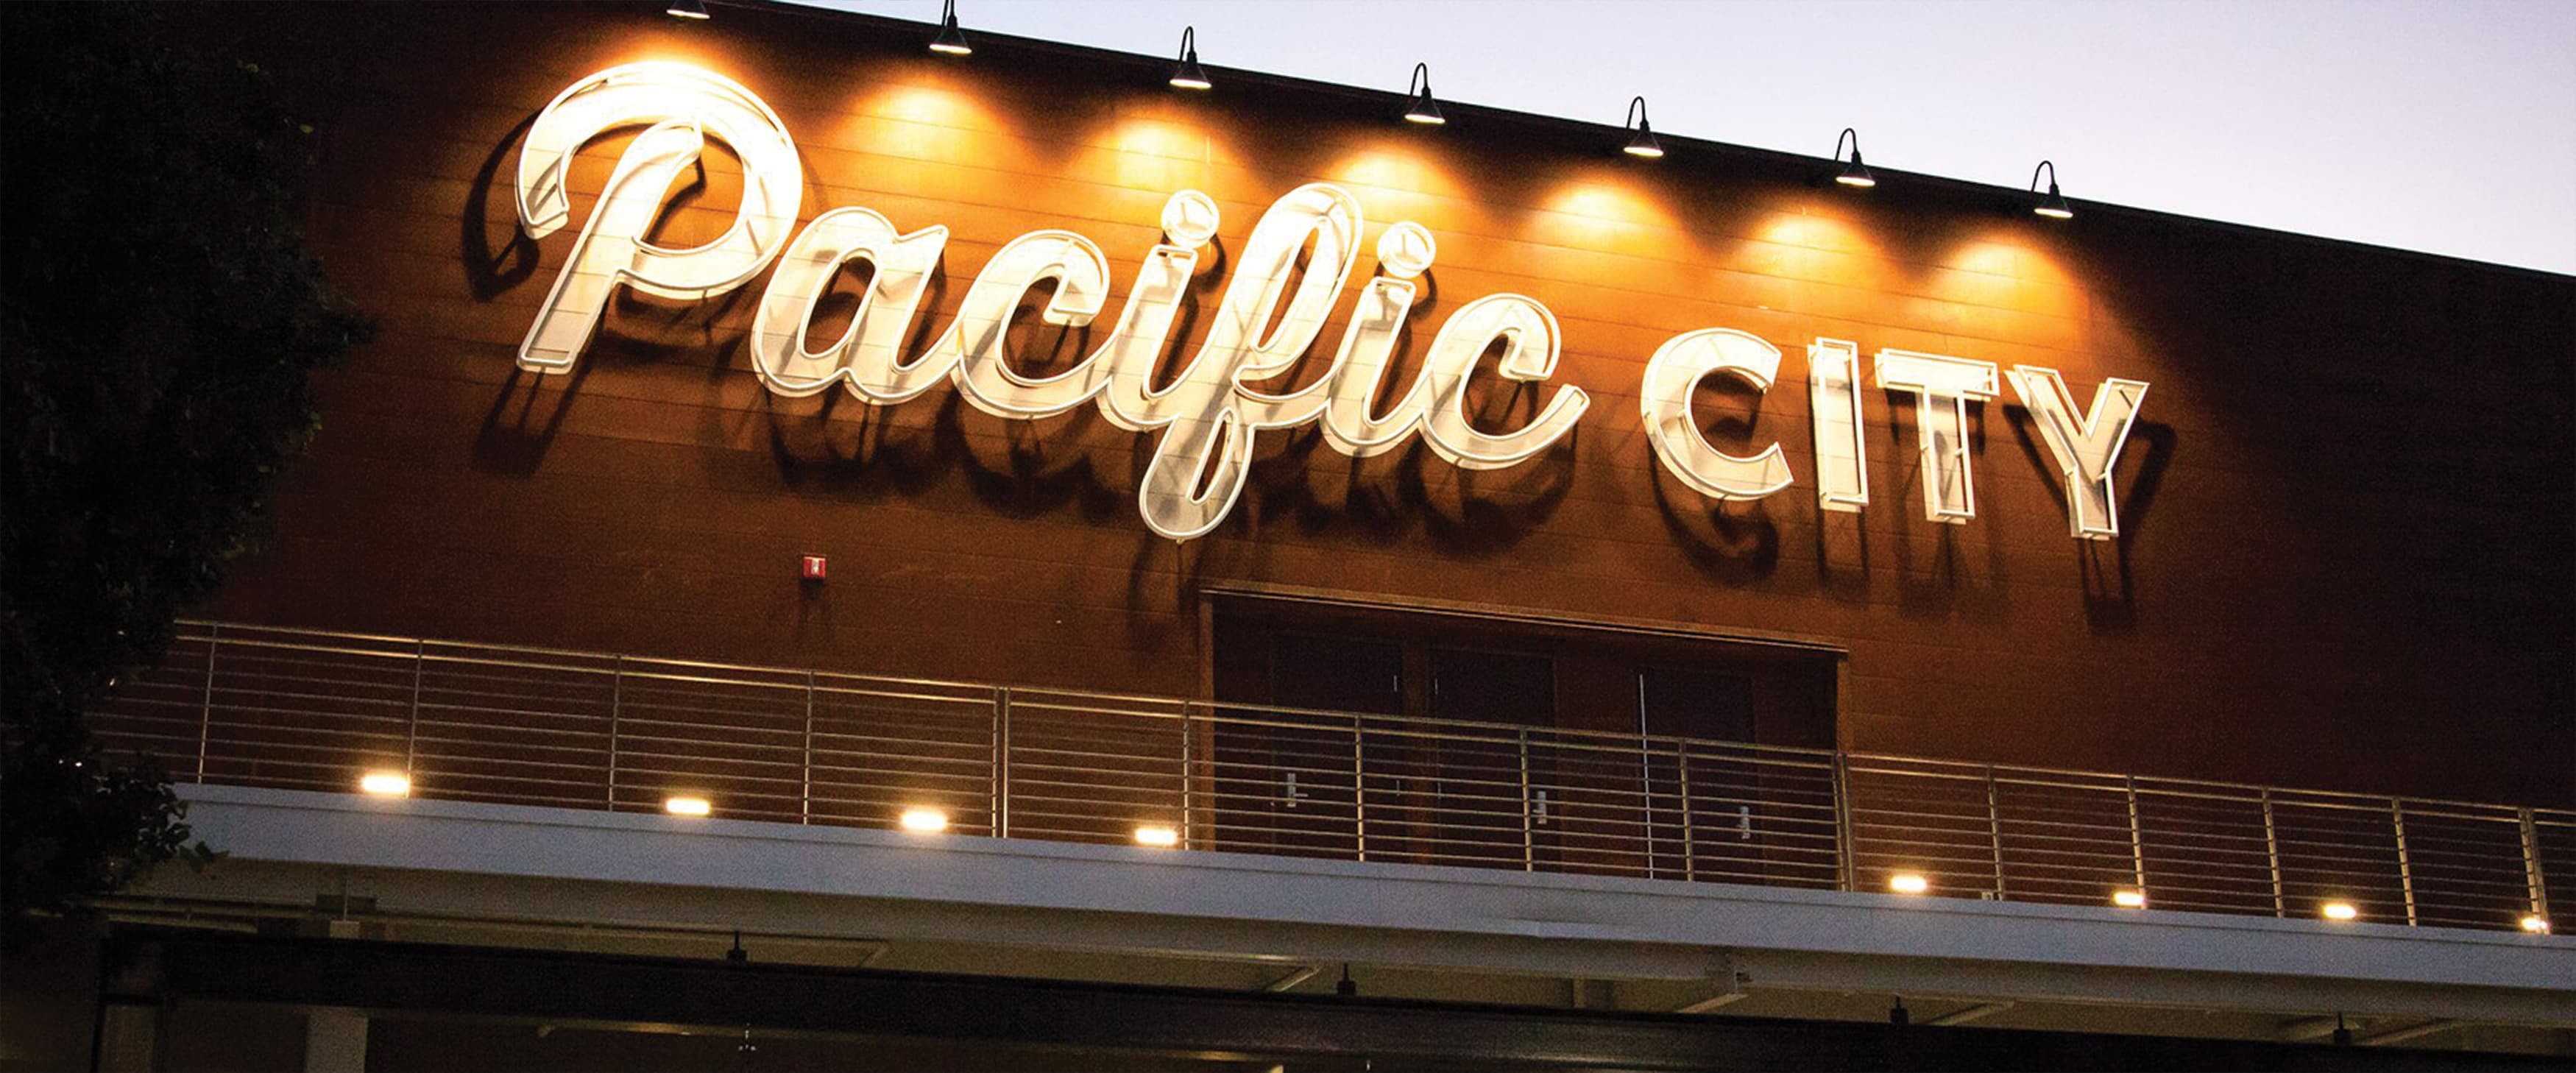 A large painted and exposed neon identity sign at Pacific City.